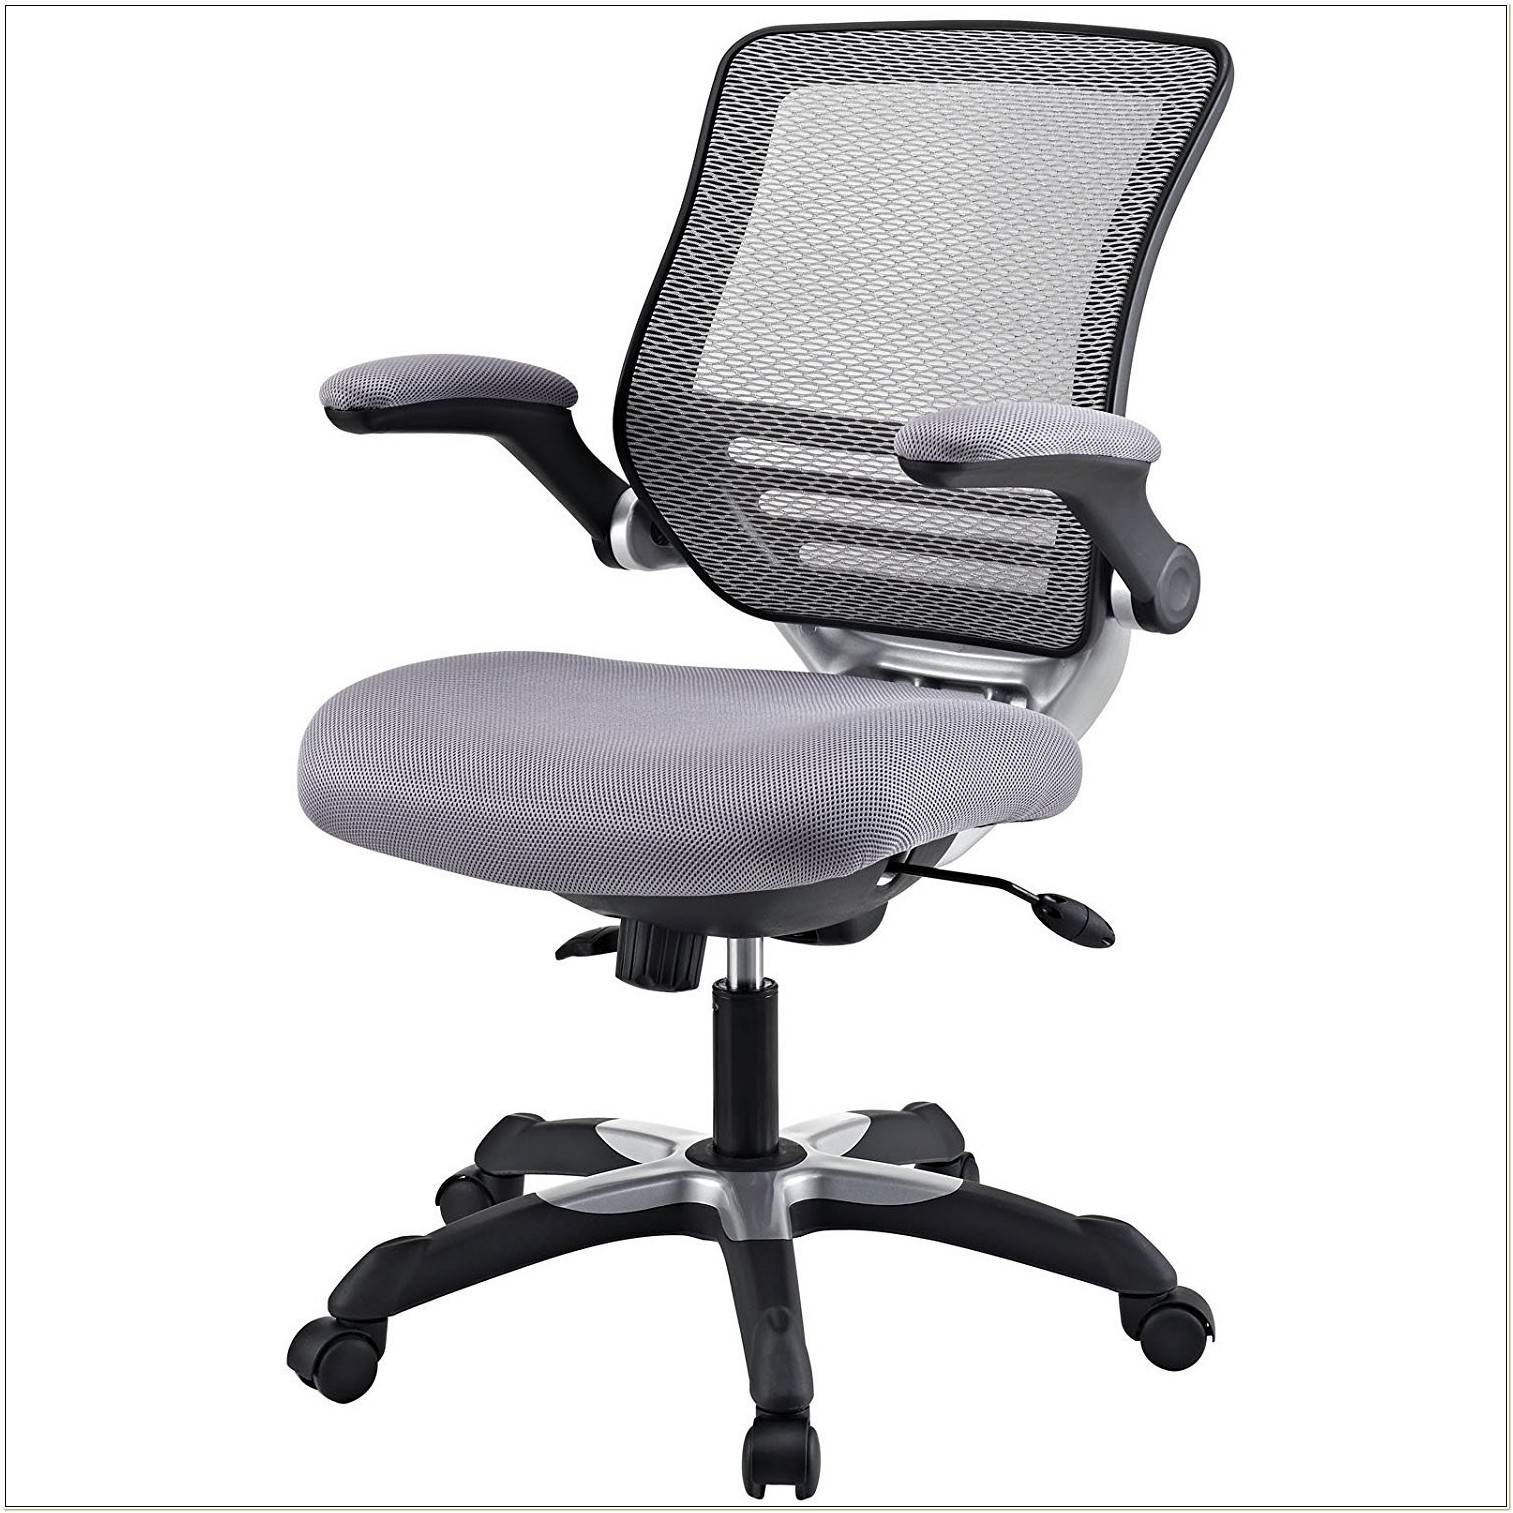 Skate Silver Grey Mesh Ergonomic Chair